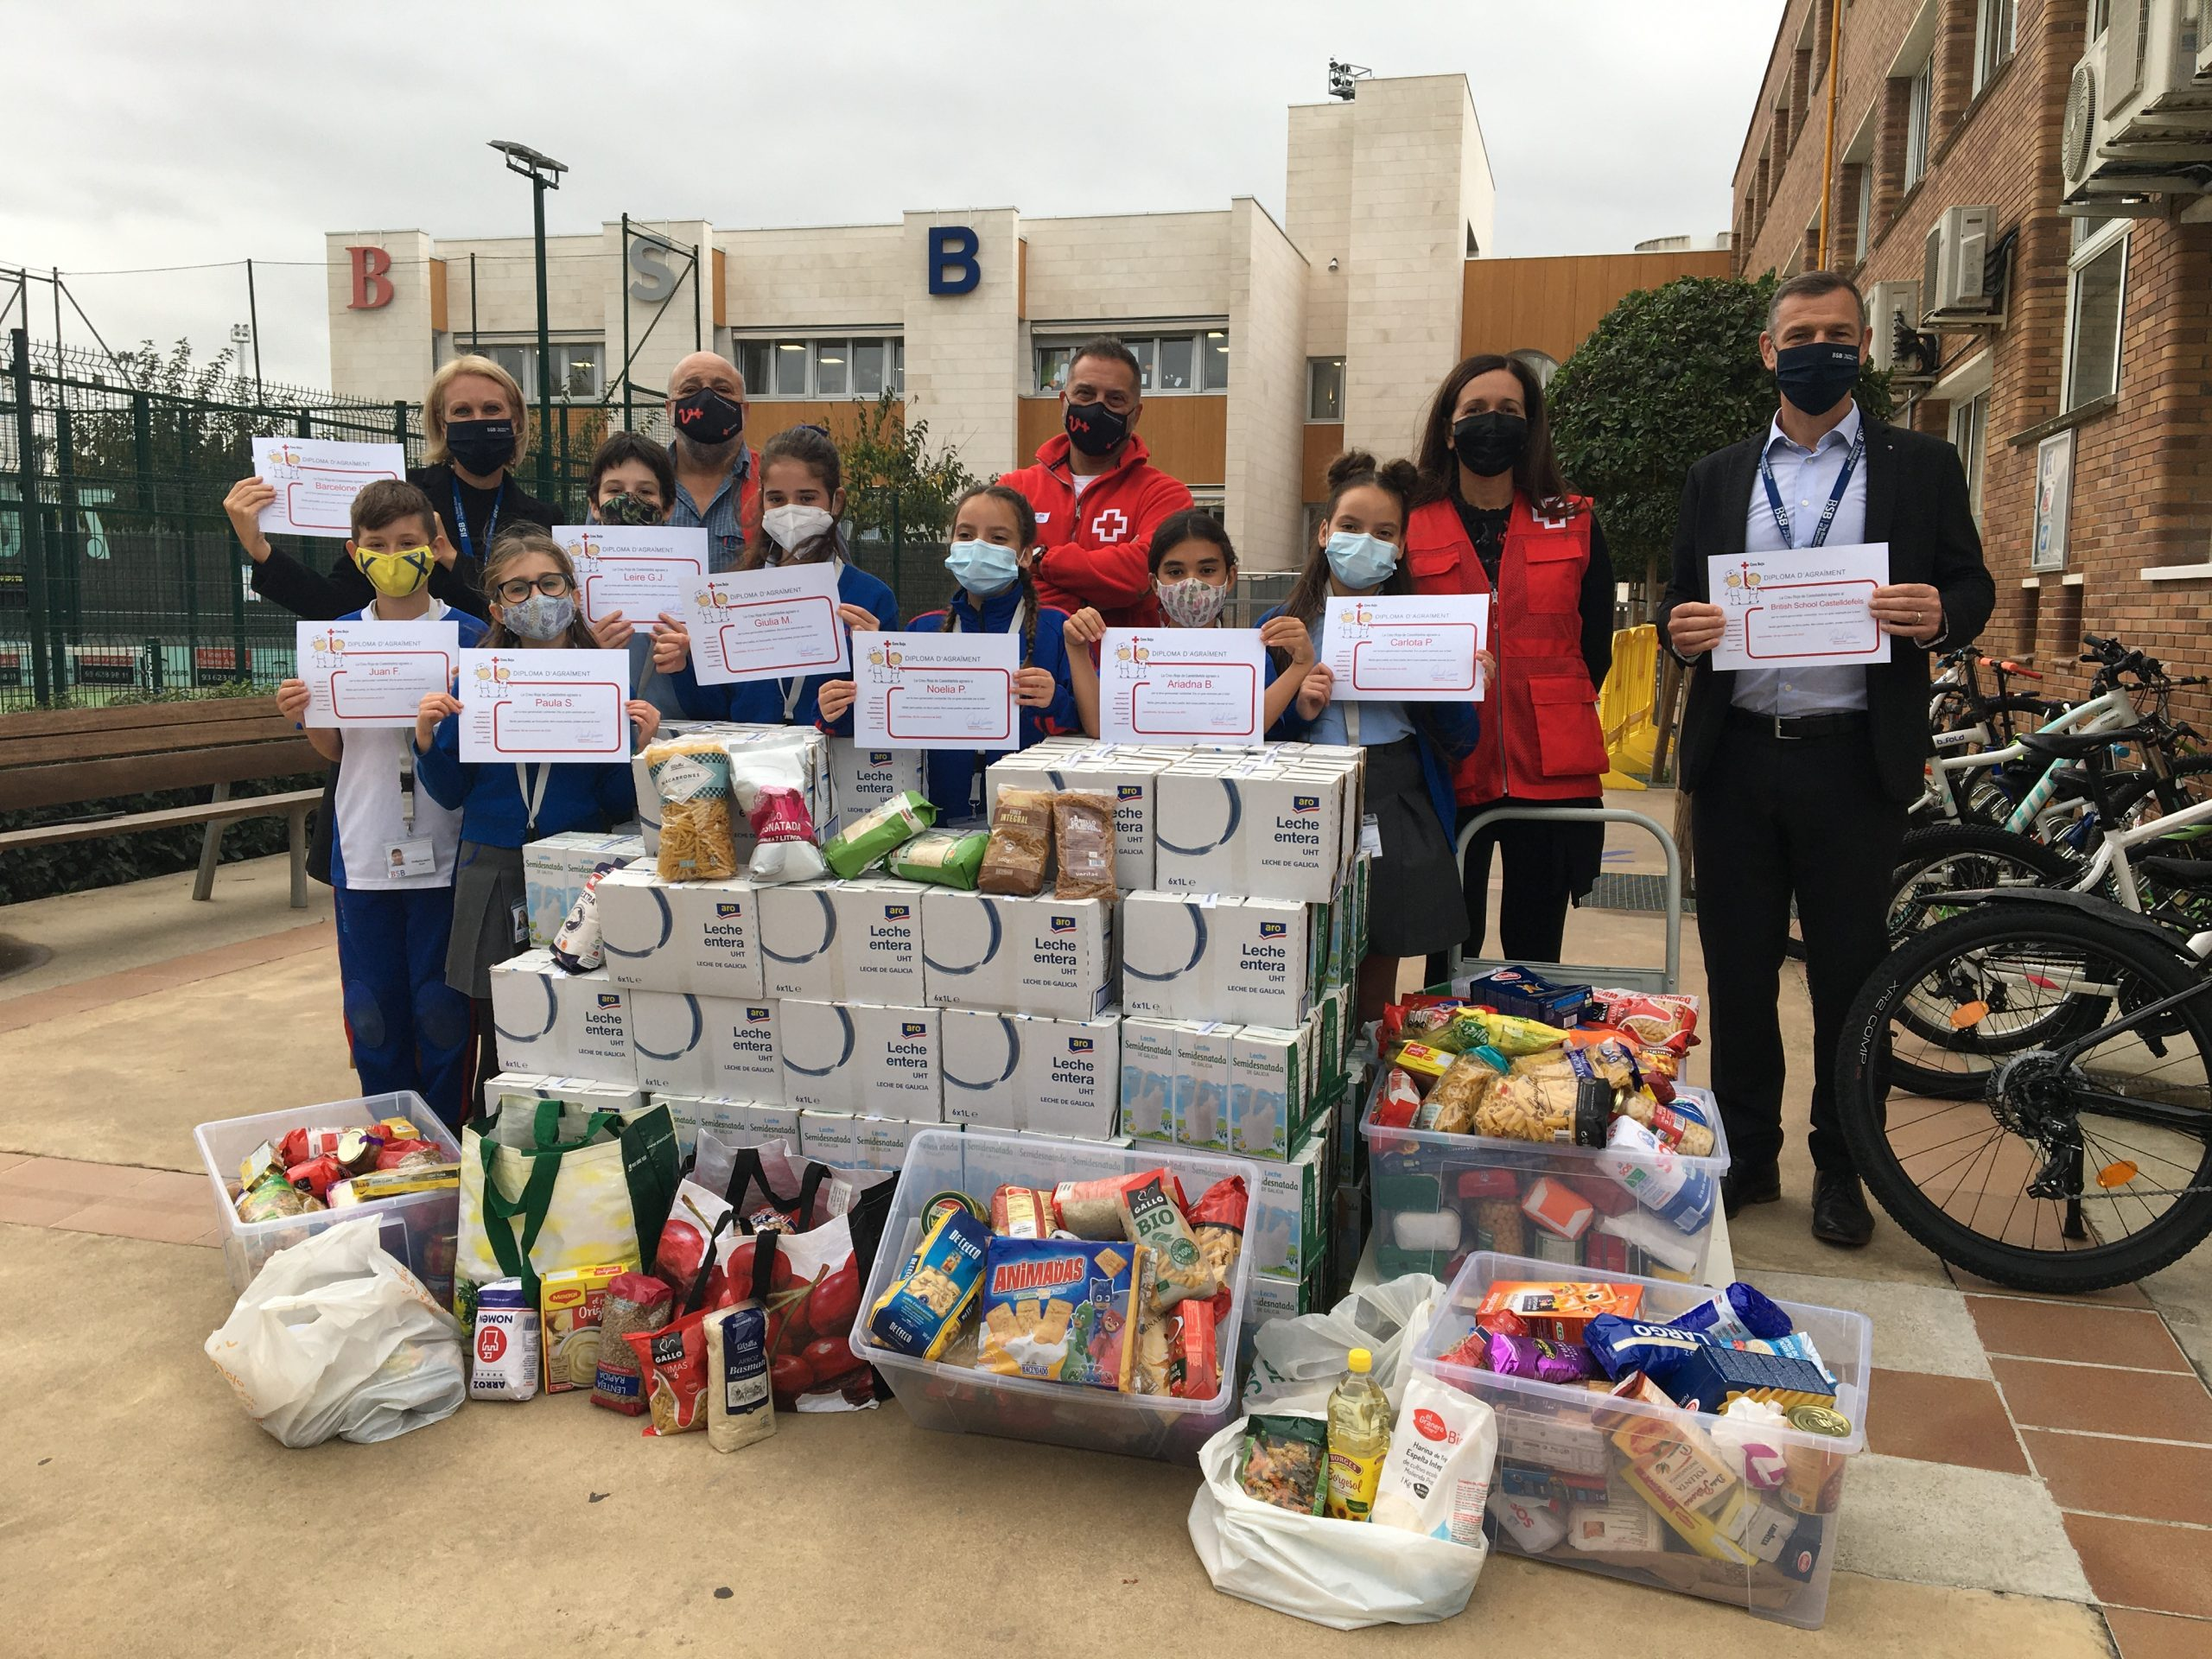 bsb-harvest-festival-food-collection-2020 (12)